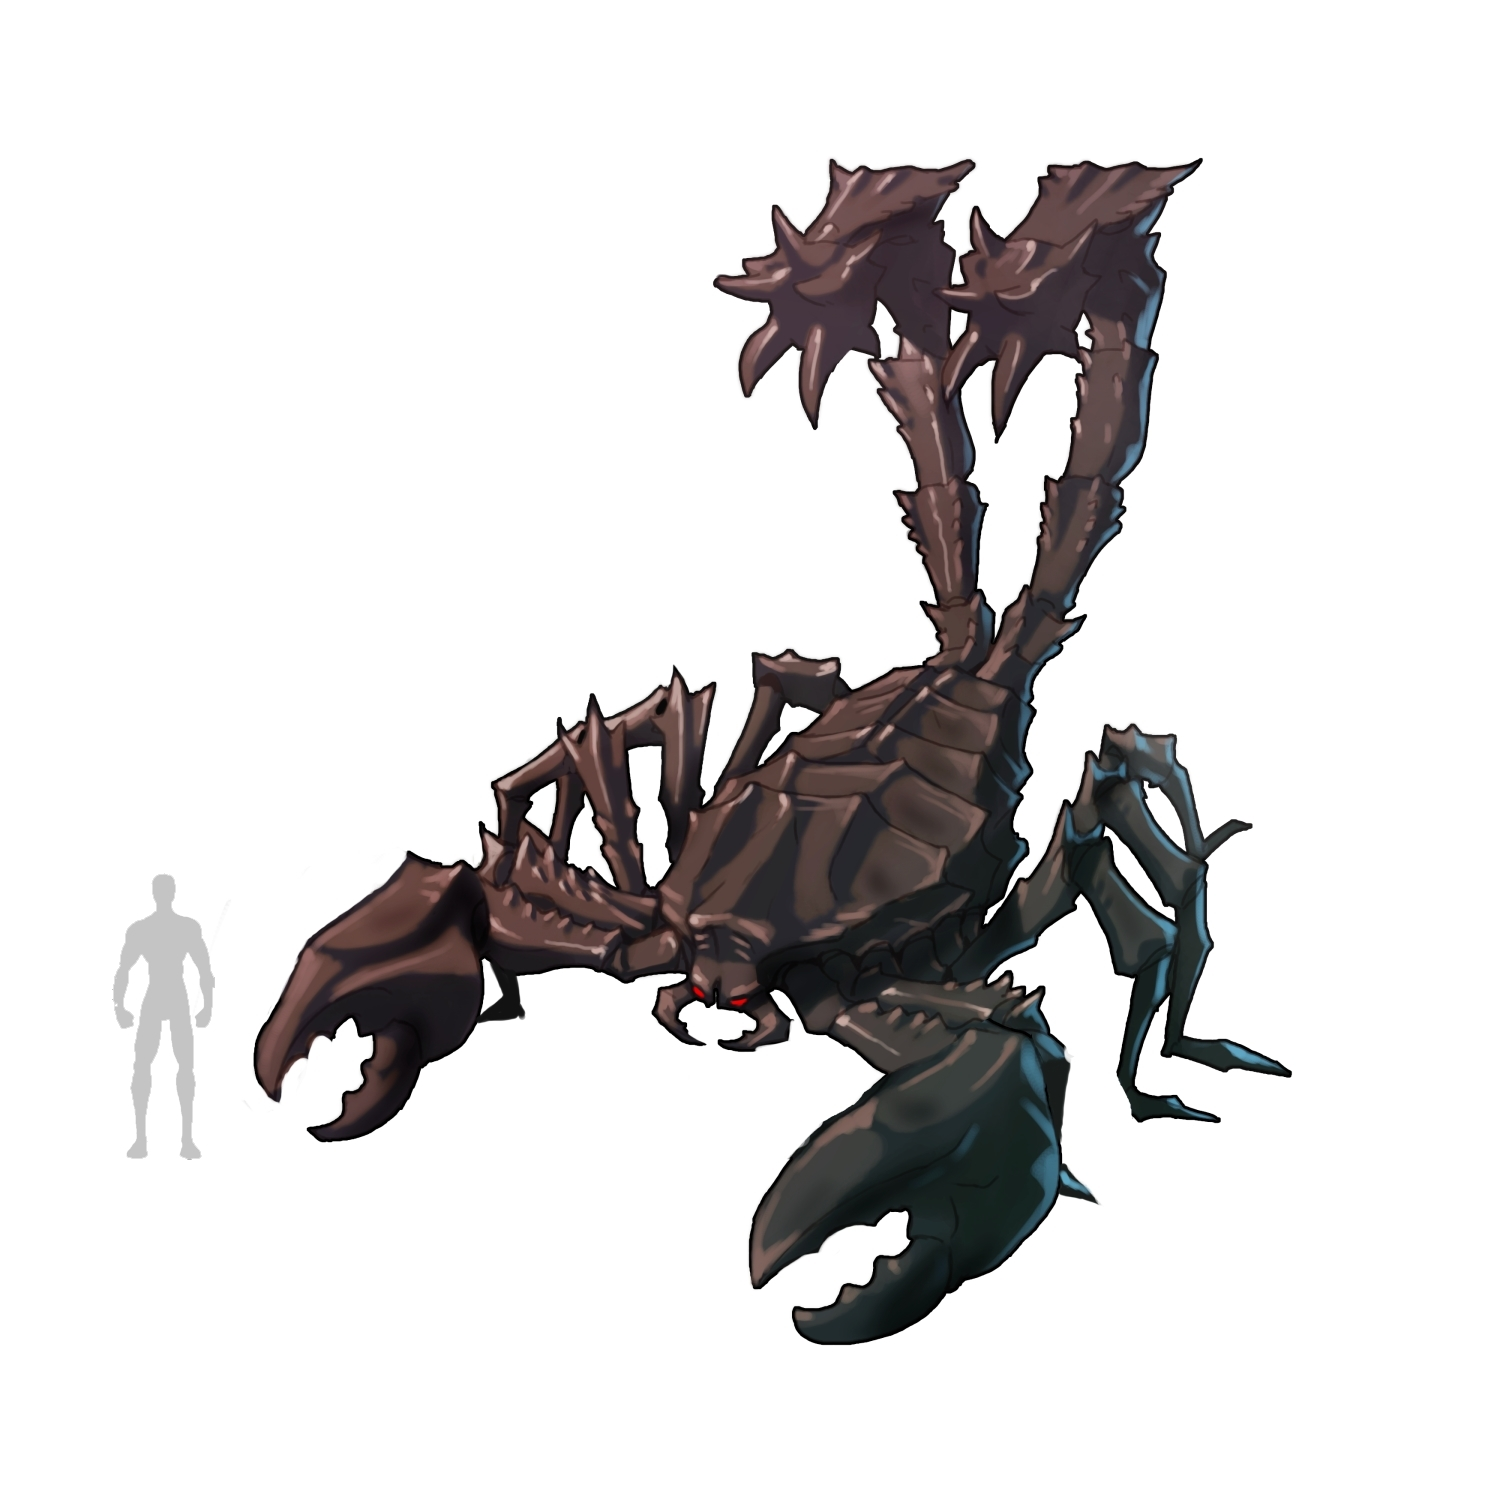 Giant_Scorpion_by_GleamingScythe.jpg